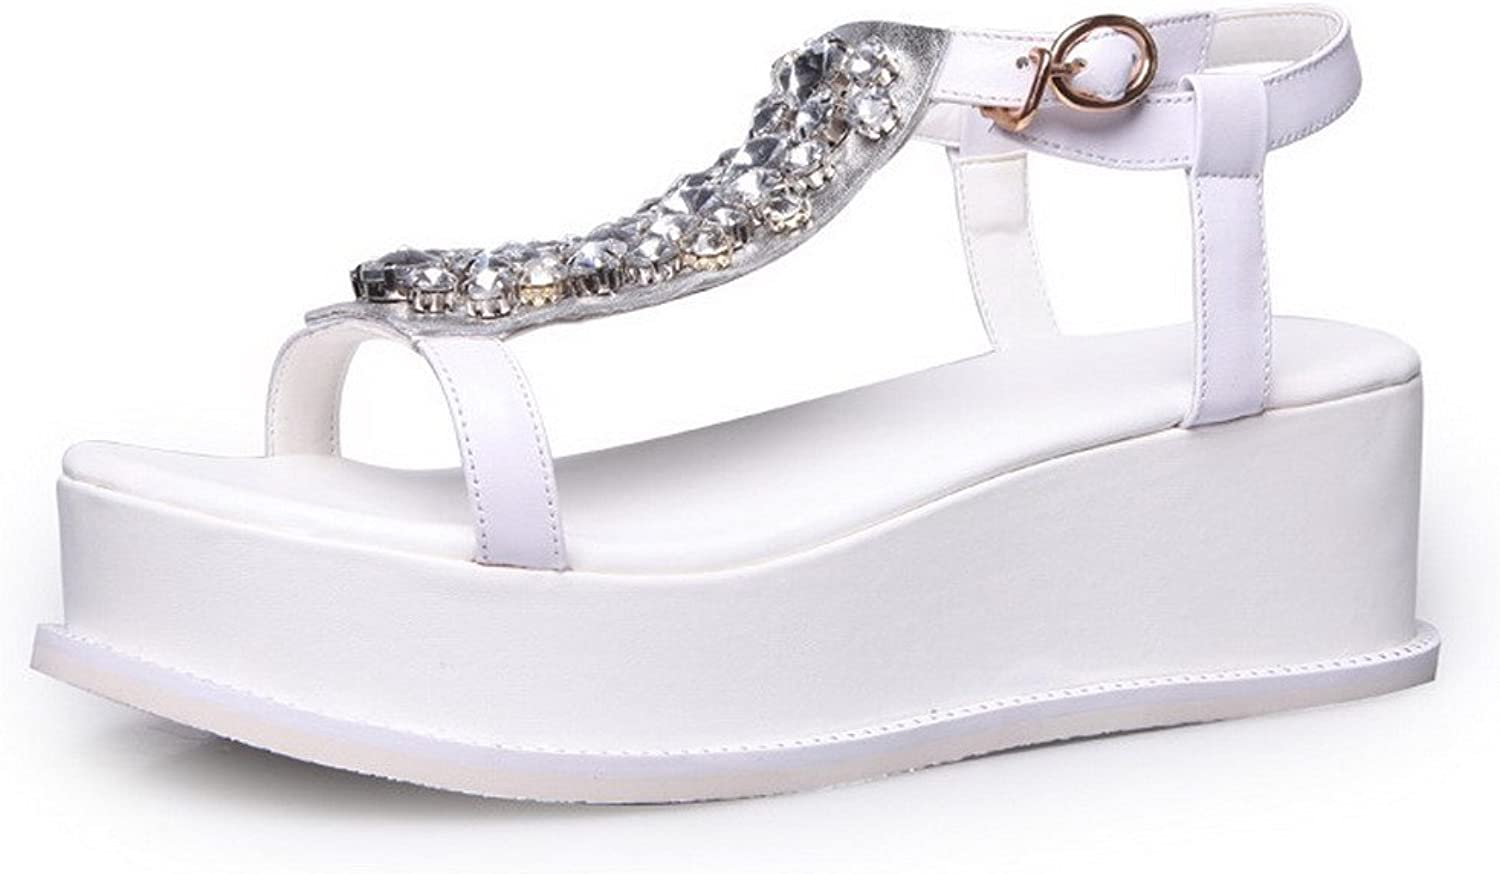 AmoonyFashion Women's Buckle Open-Toe Kitten-Heels Cow Leather Solid Sandals